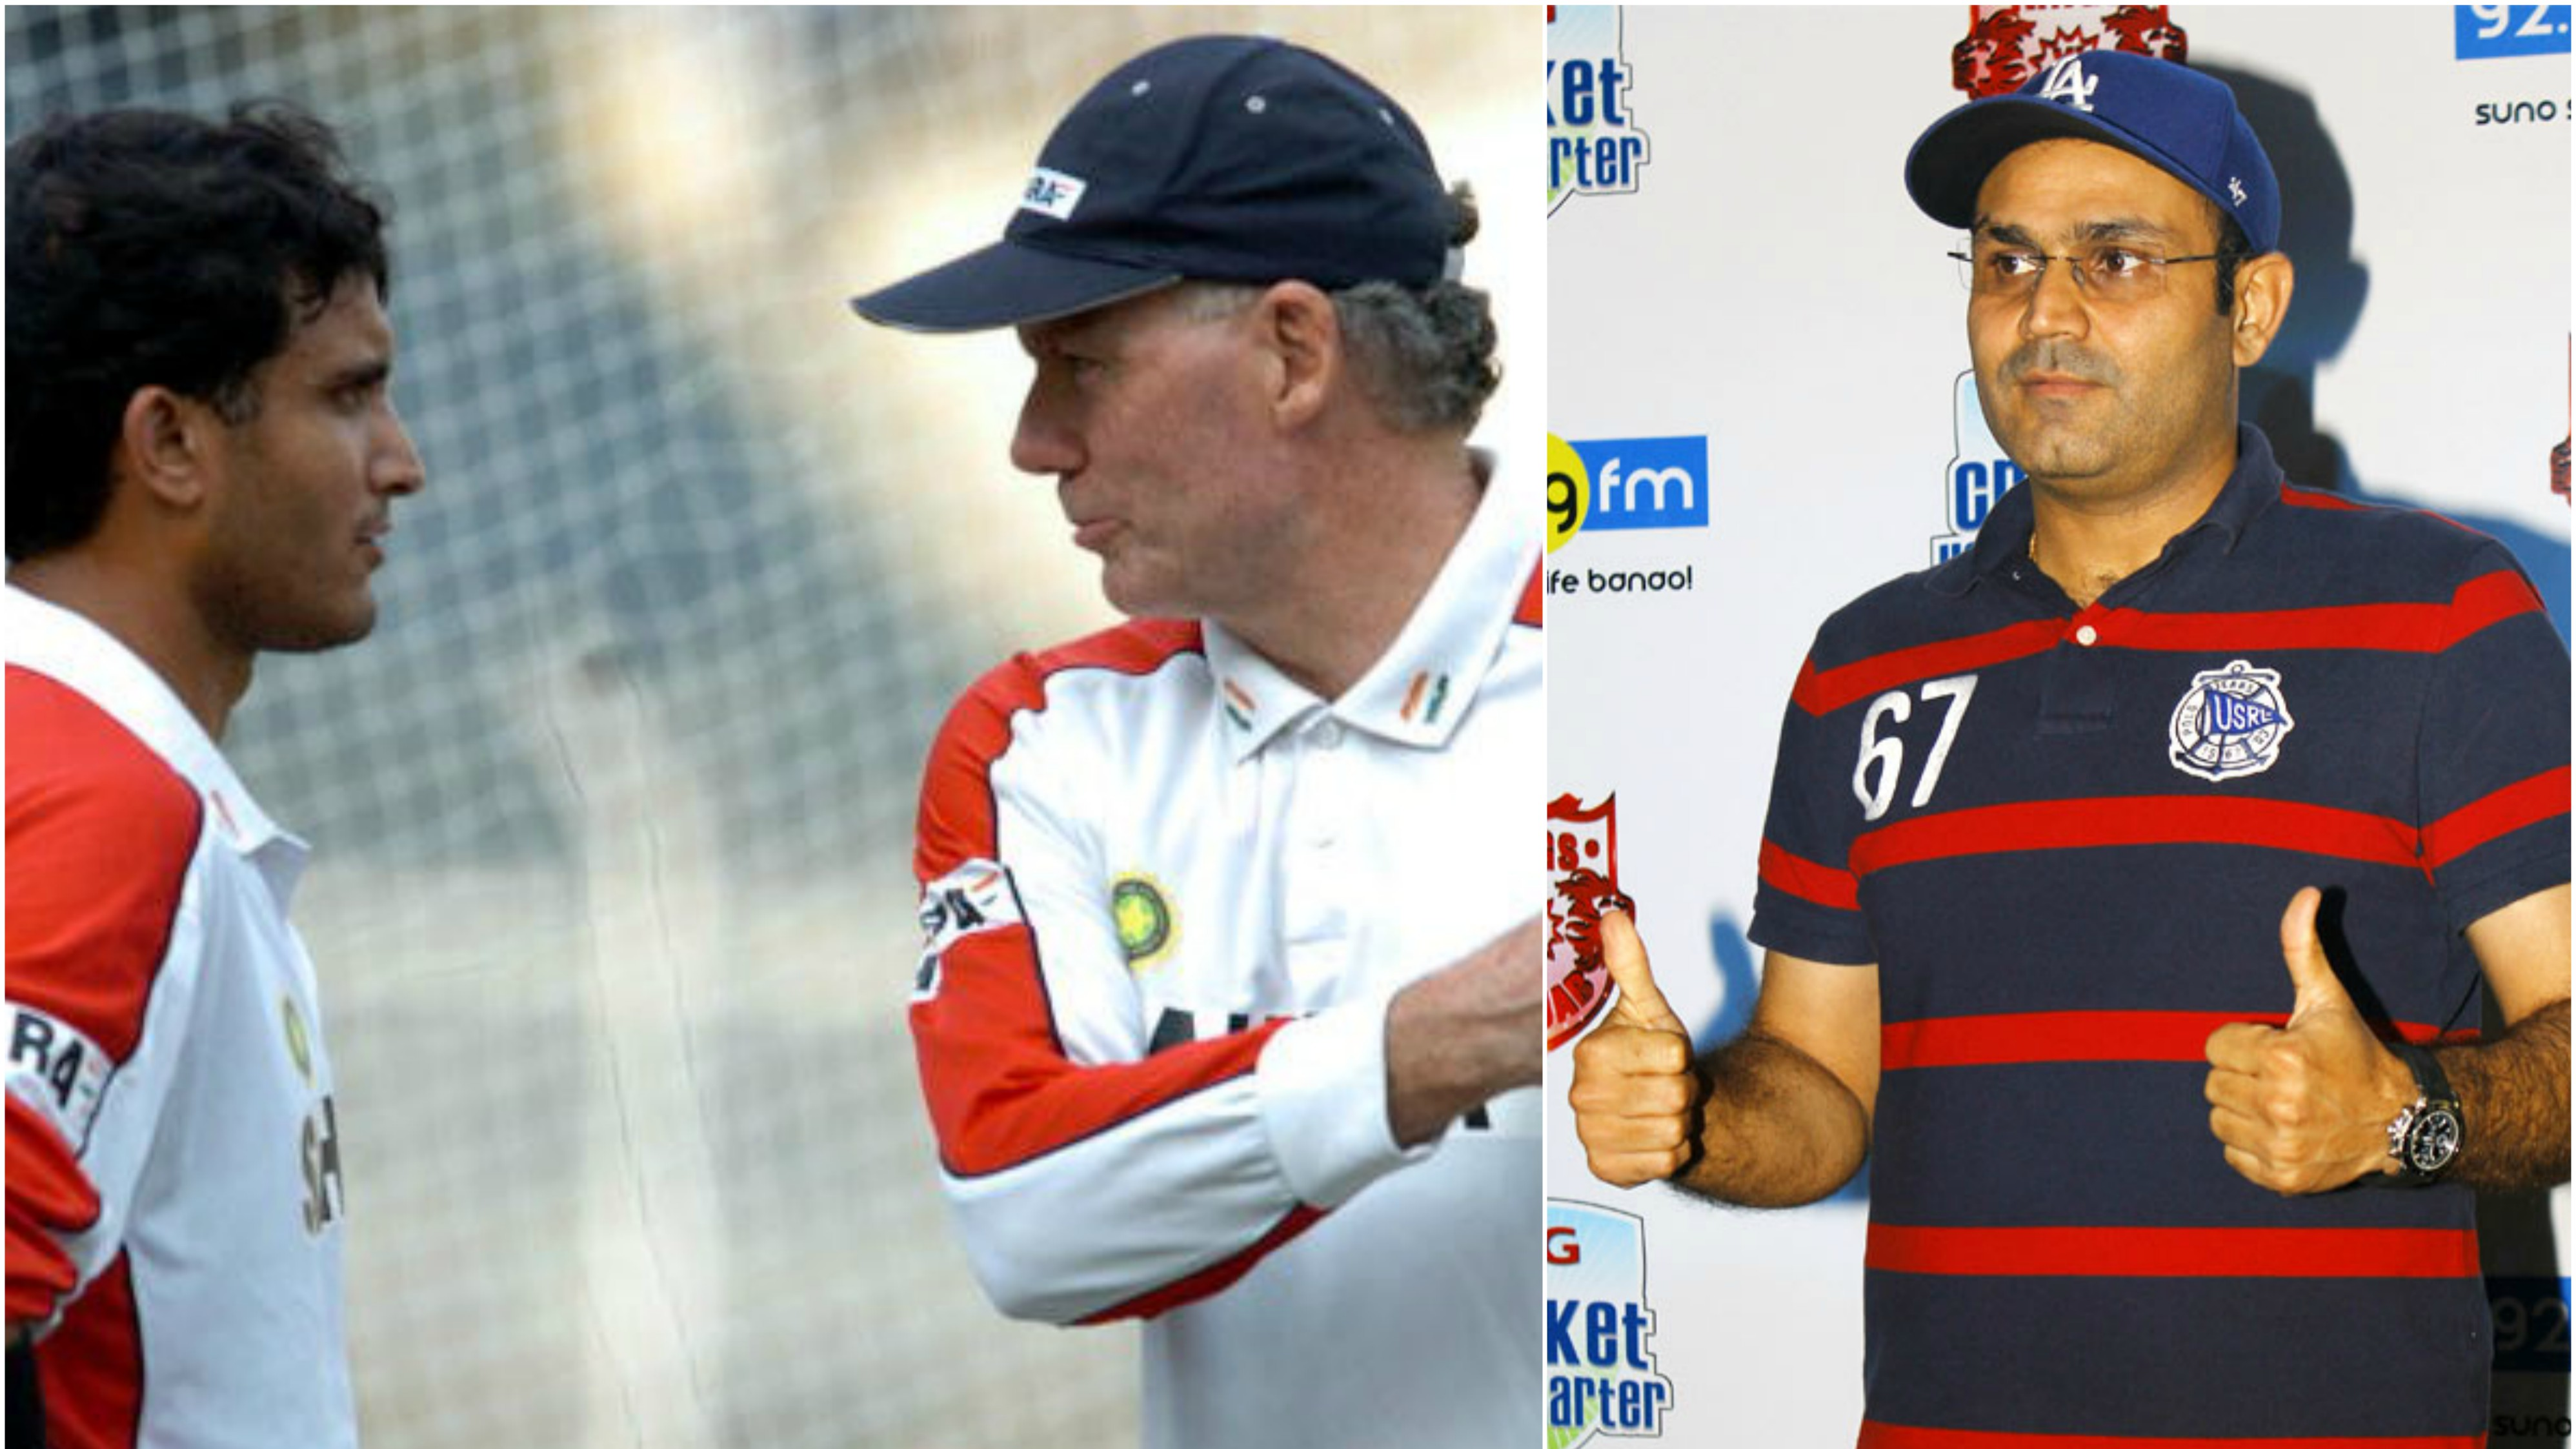 Virender Sehwag reveals about Greg Chappell's controversial mail against Sourav Ganguly